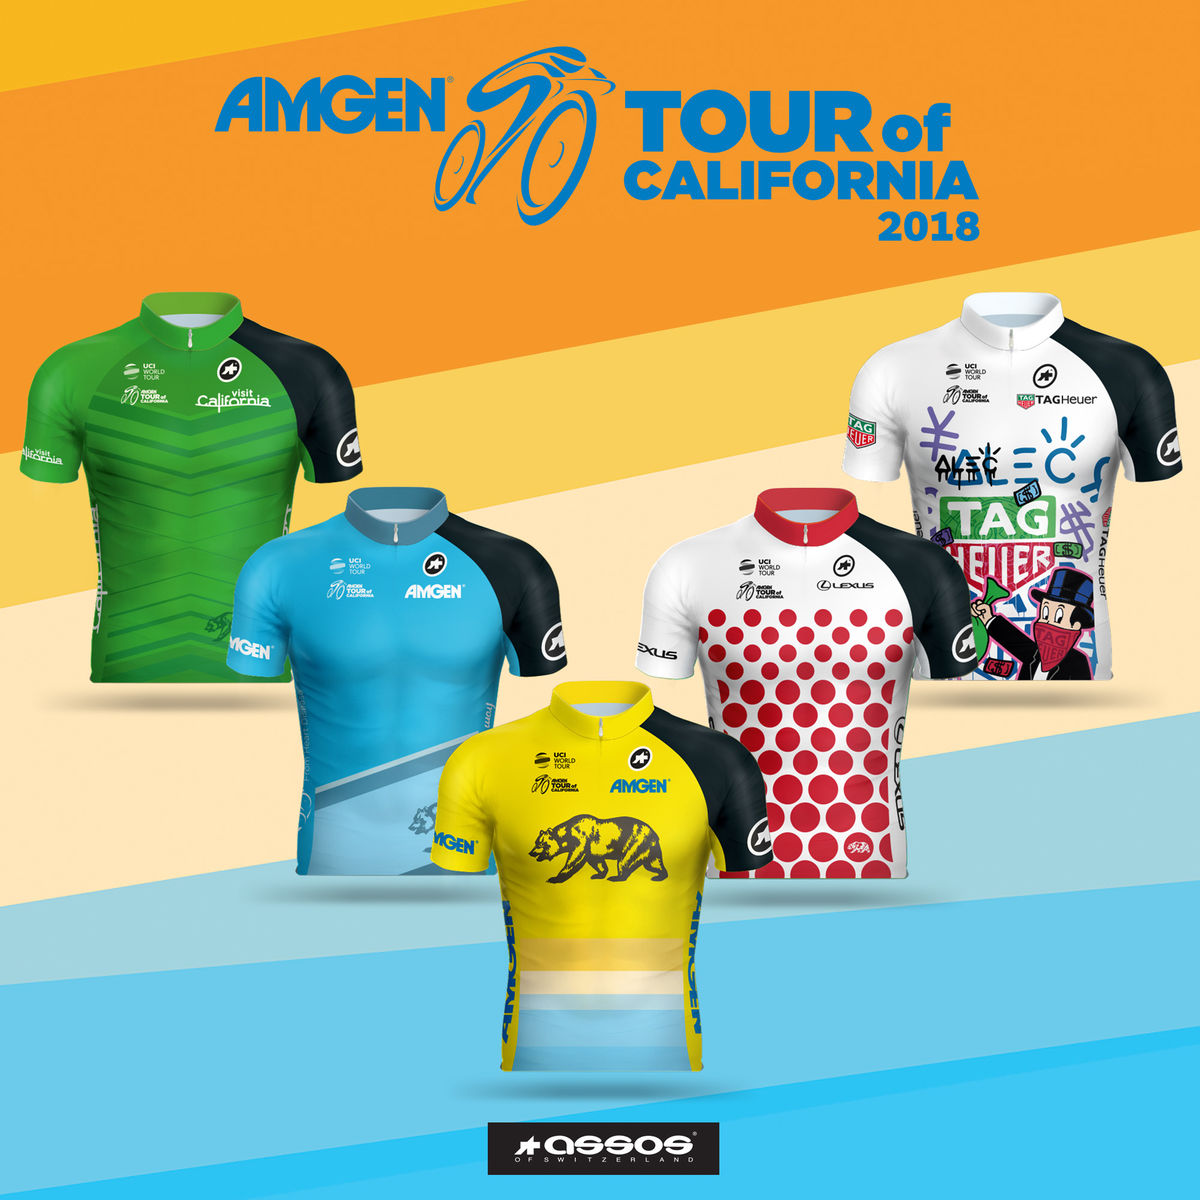 2018 Amgen Tour of California Jerseys